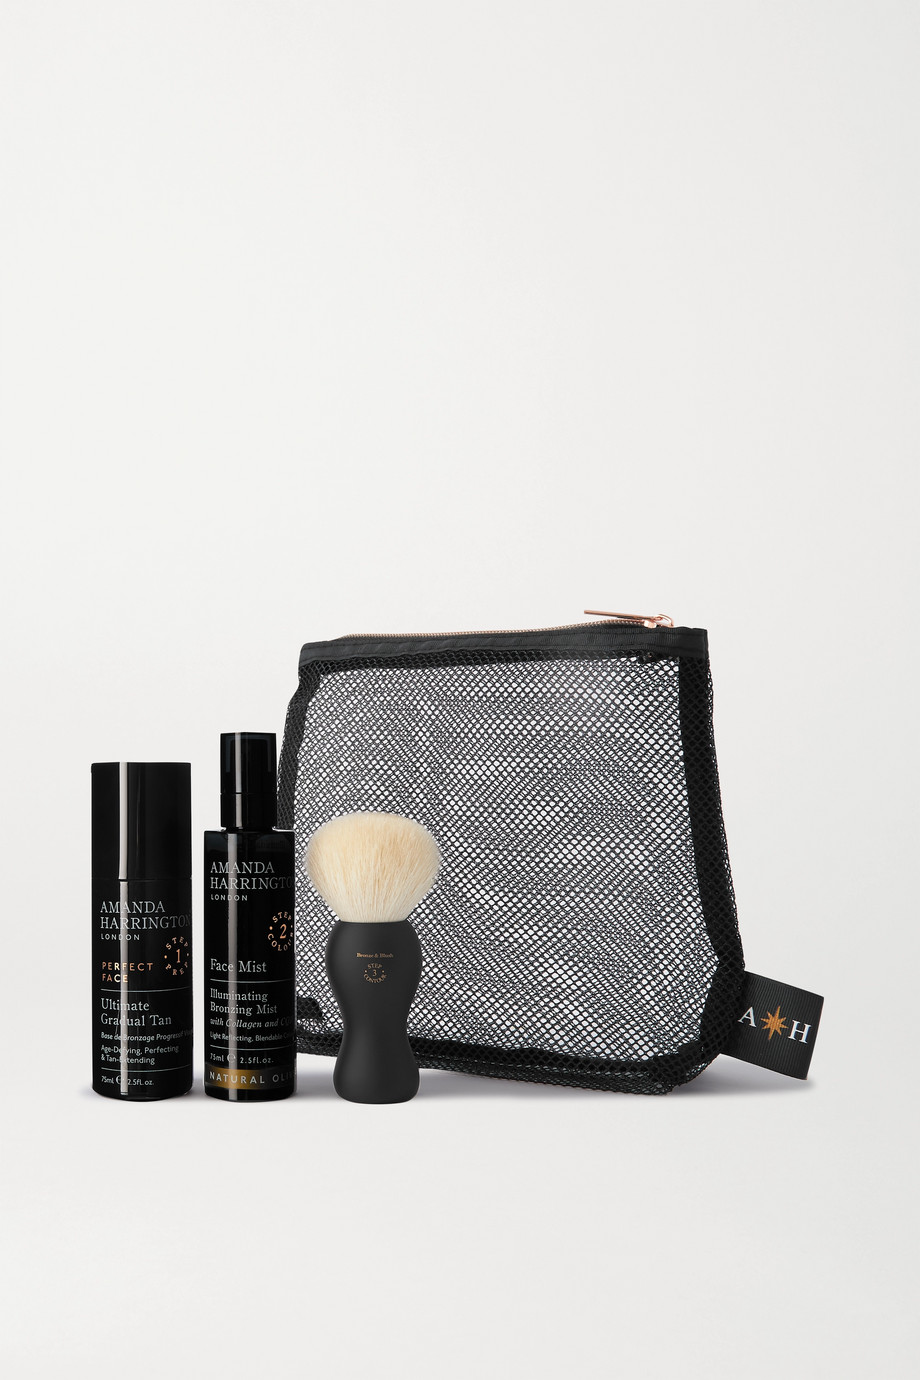 Amanda Harrington Buff & Bronze Face Set - Natural Olive